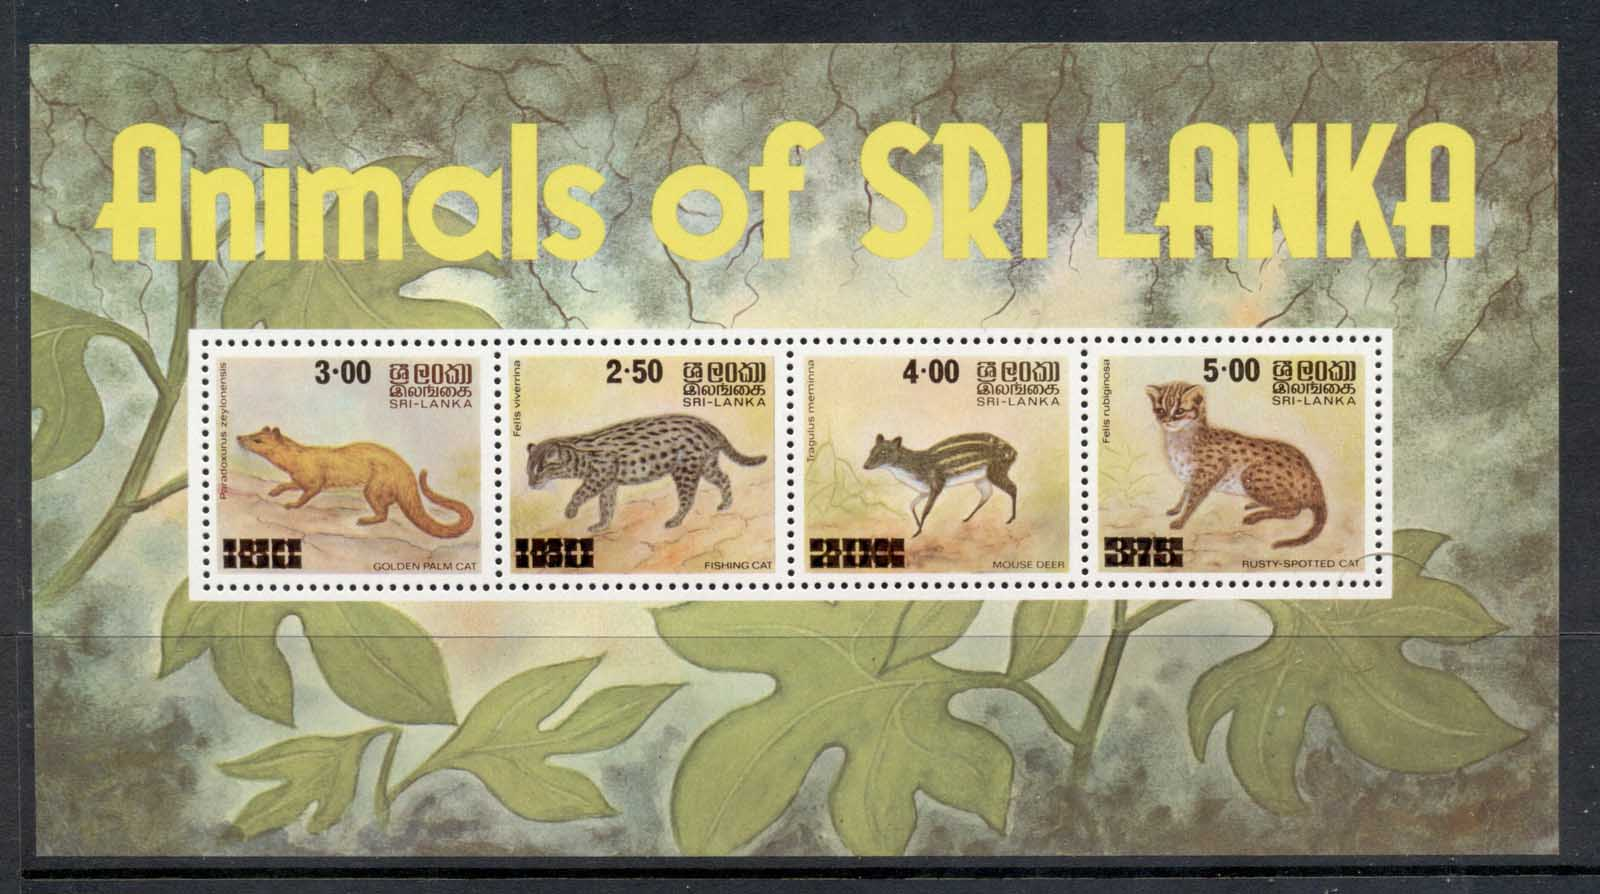 Sri Lanka 1980 Animals of Sri Lanka Surch. MS MUH